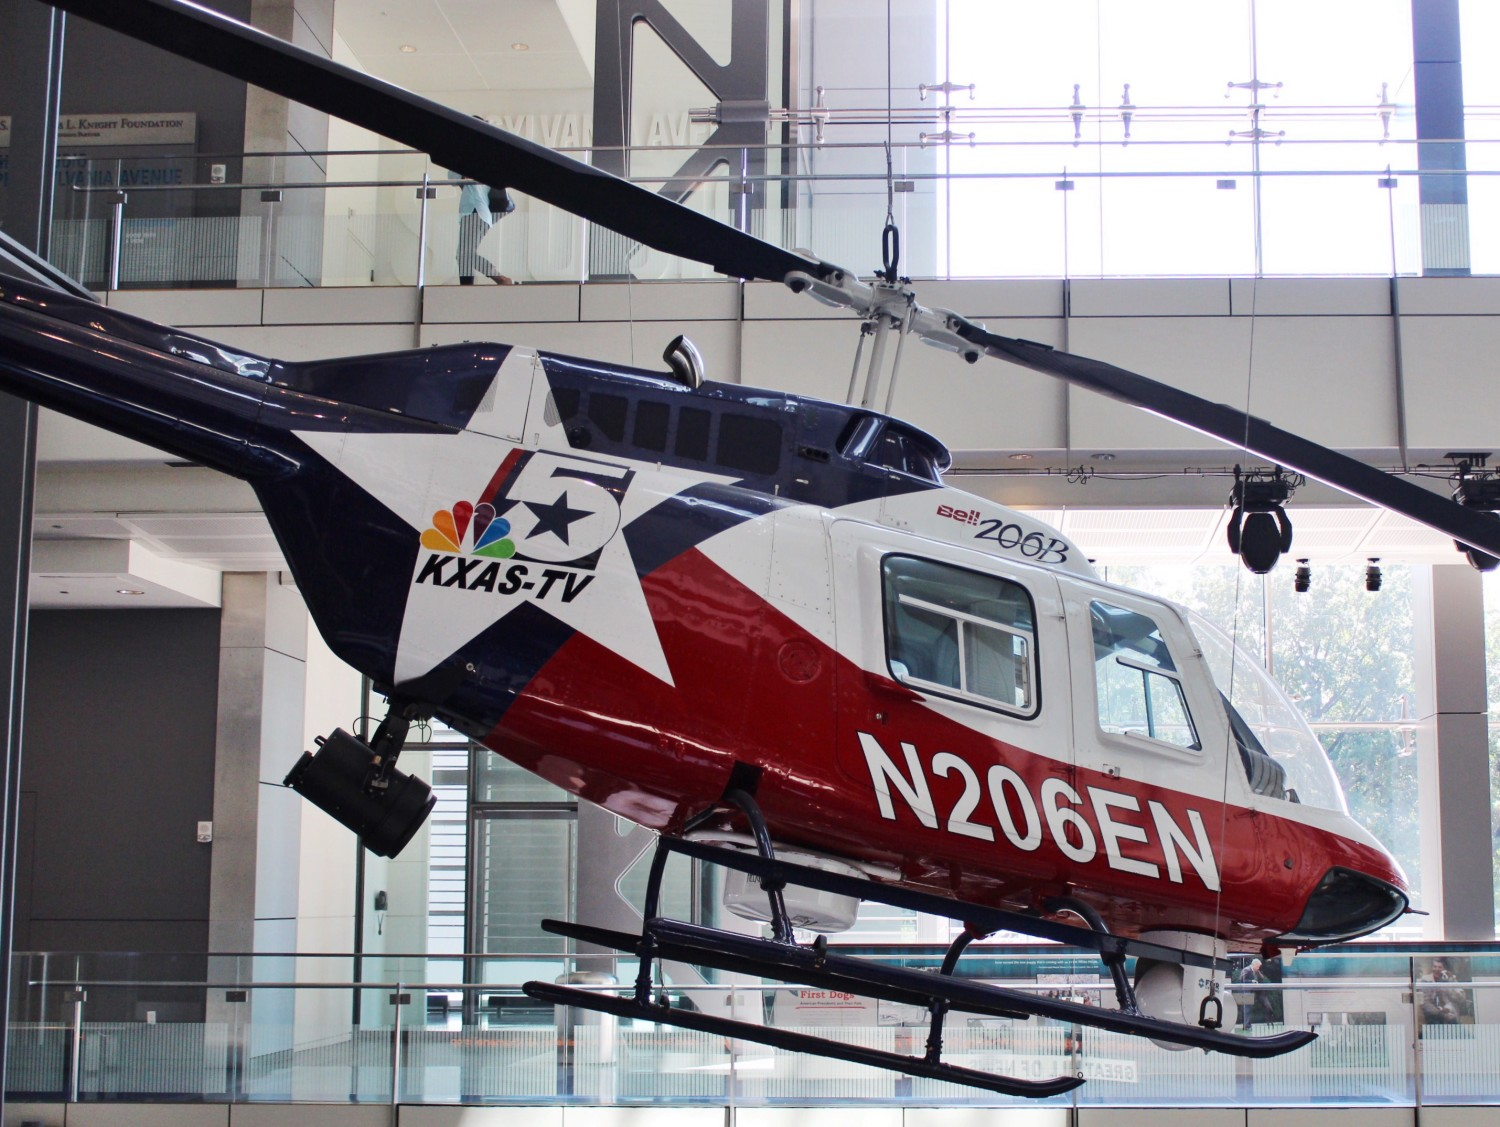 Newseum News Helicopter